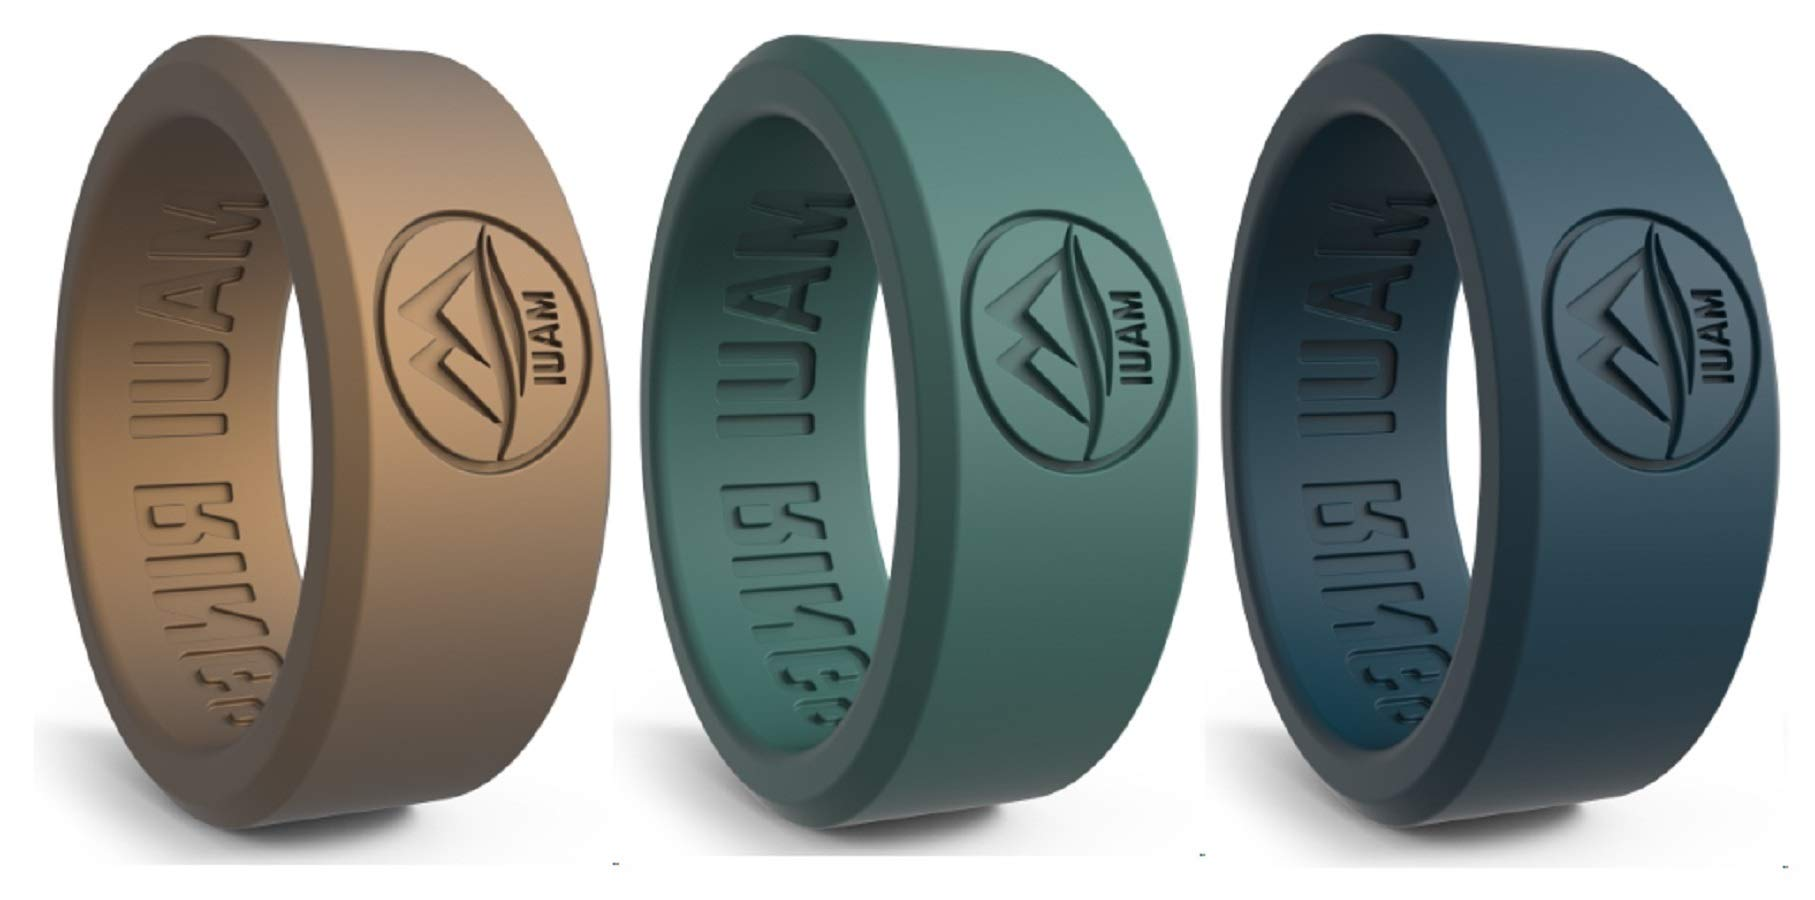 MAUI RINGS BEST Silicone Wedding Ring by SOLID STYLE Engagement Rings Silicone Band for Men Wedding Rubber Bands Mens Ring Men Wedding Band SAFE ring Sport Gym (Gold/Blue/Green, 11)